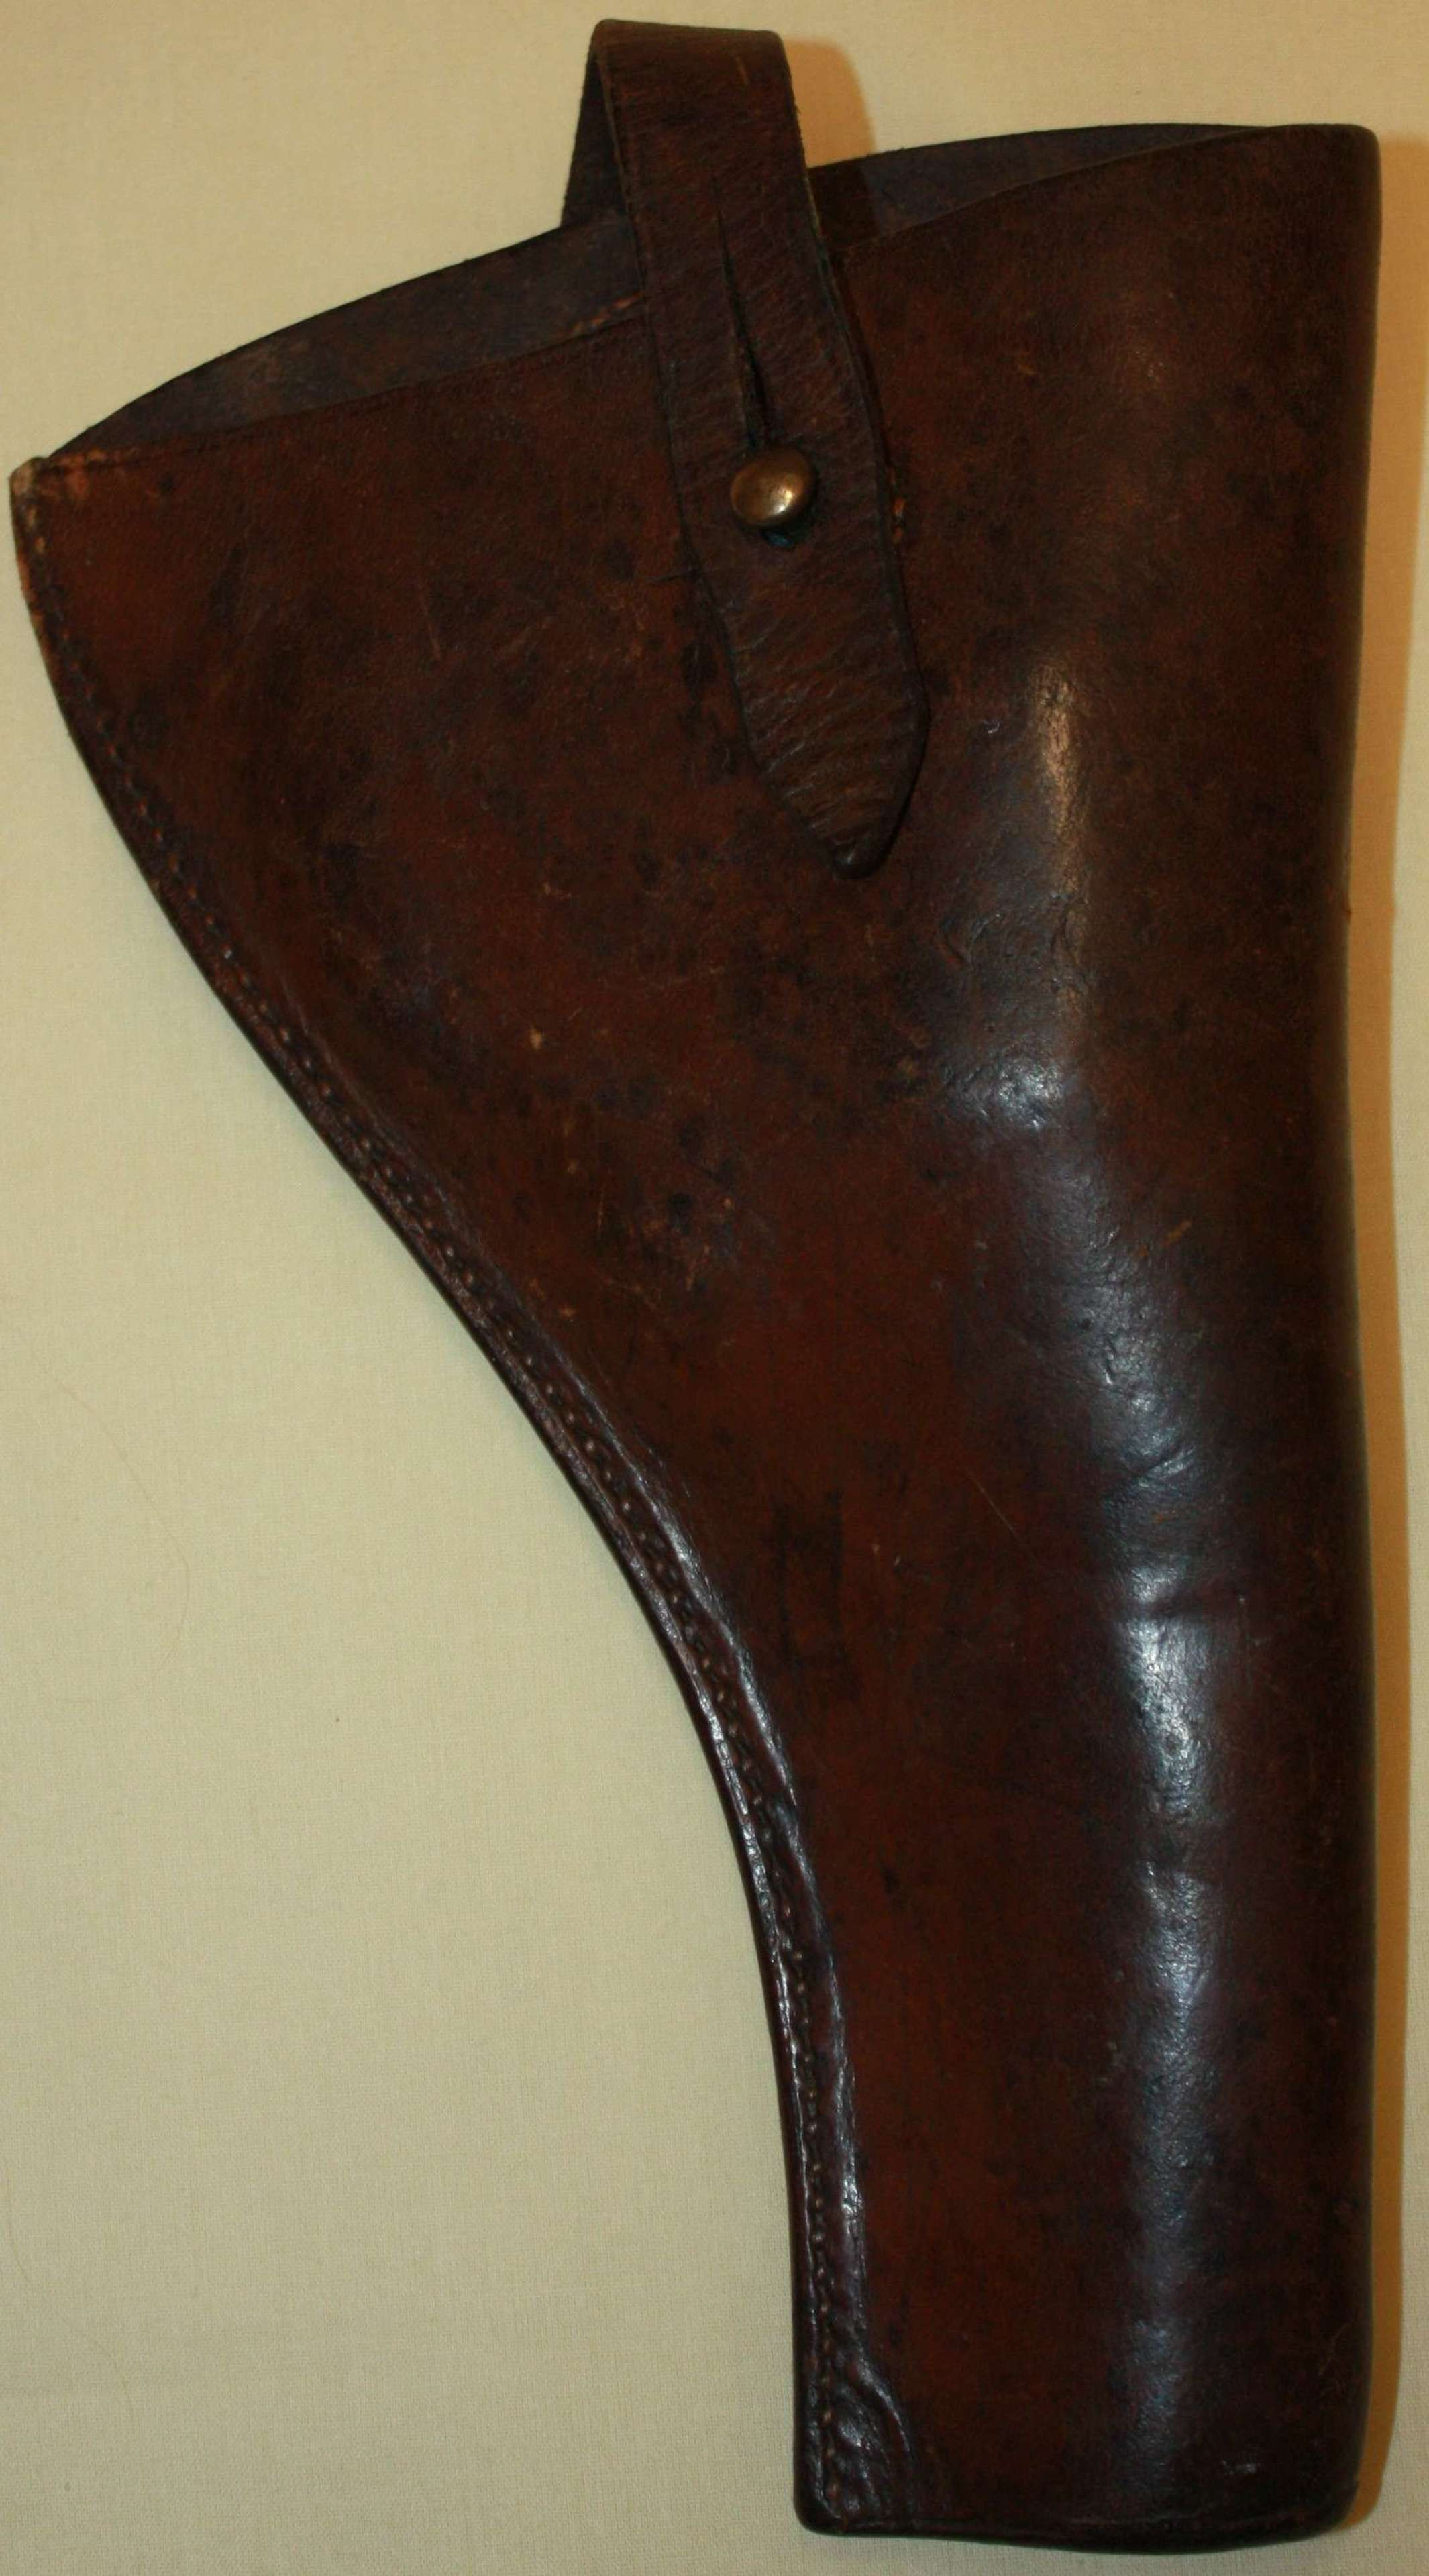 A VERY GOOD EARLY WWI 1915 DATED OPEN TOP PISTOL HOLSTER 03 PATTERN